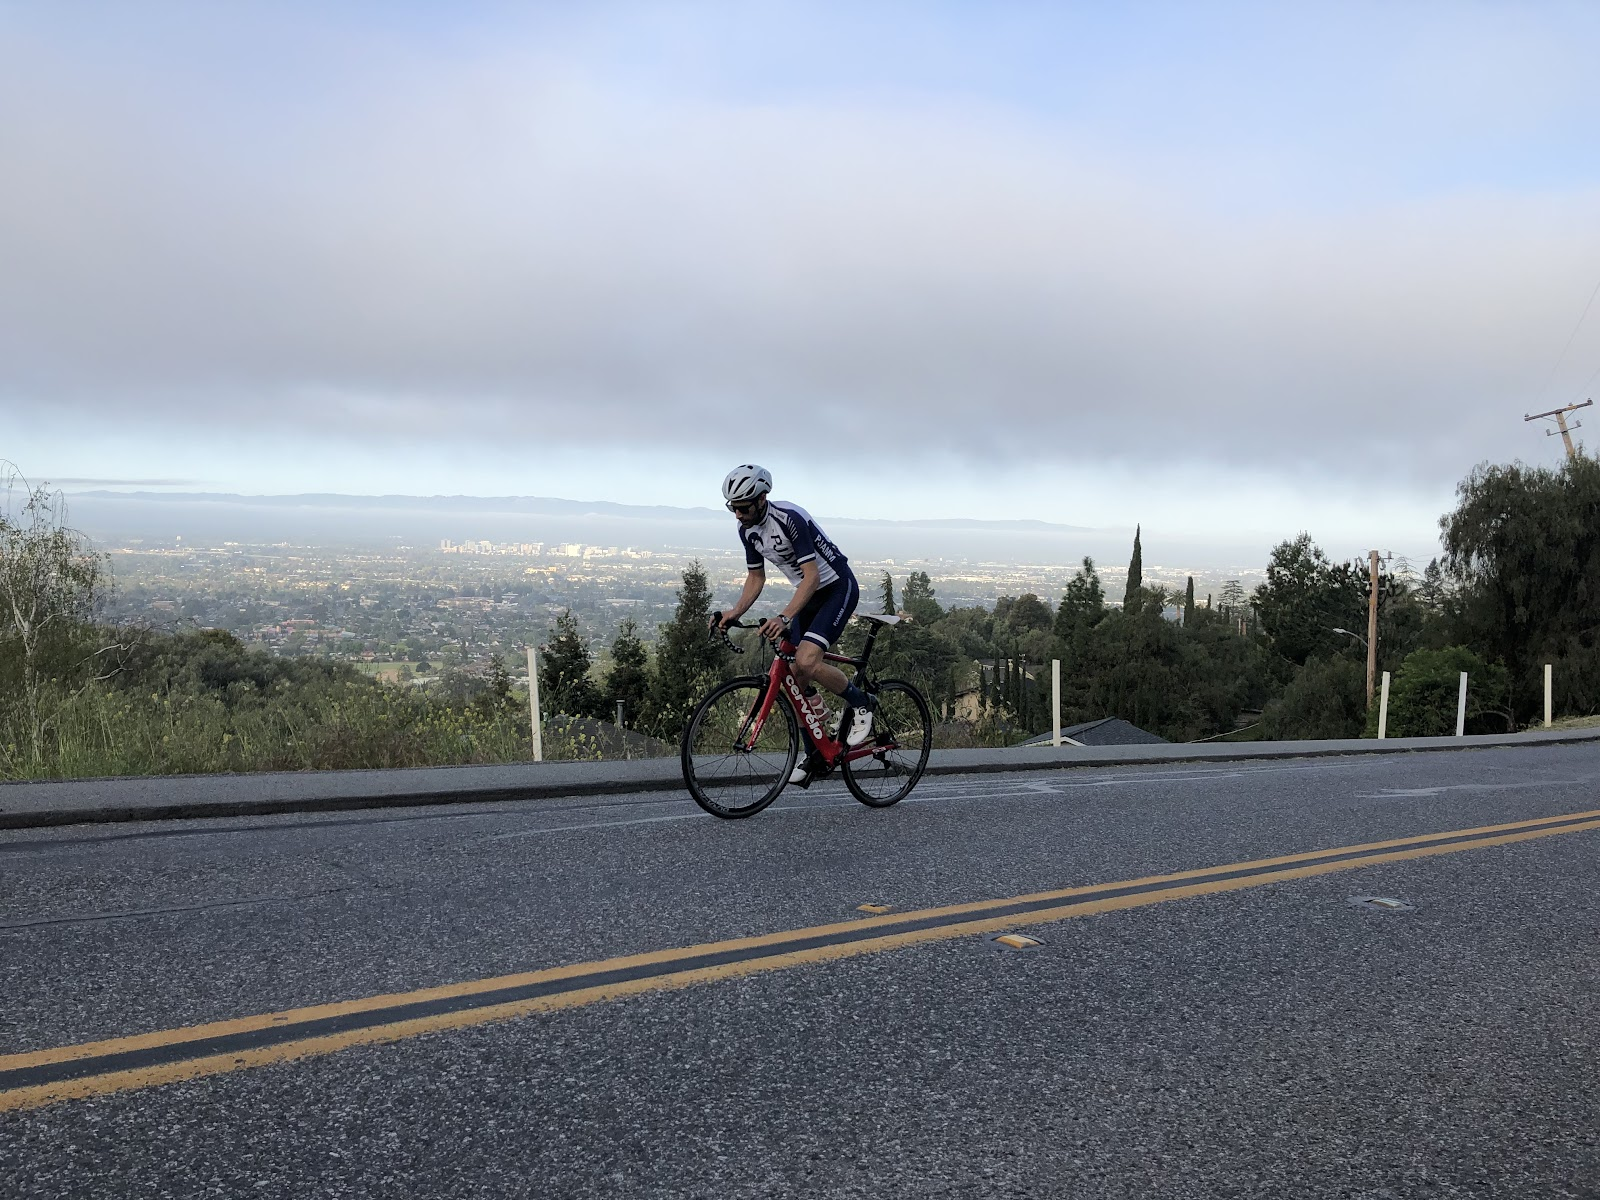 Cycling Mt. Hamilton  - cyclists on bike on road with San Jose and Silicon Valley in background